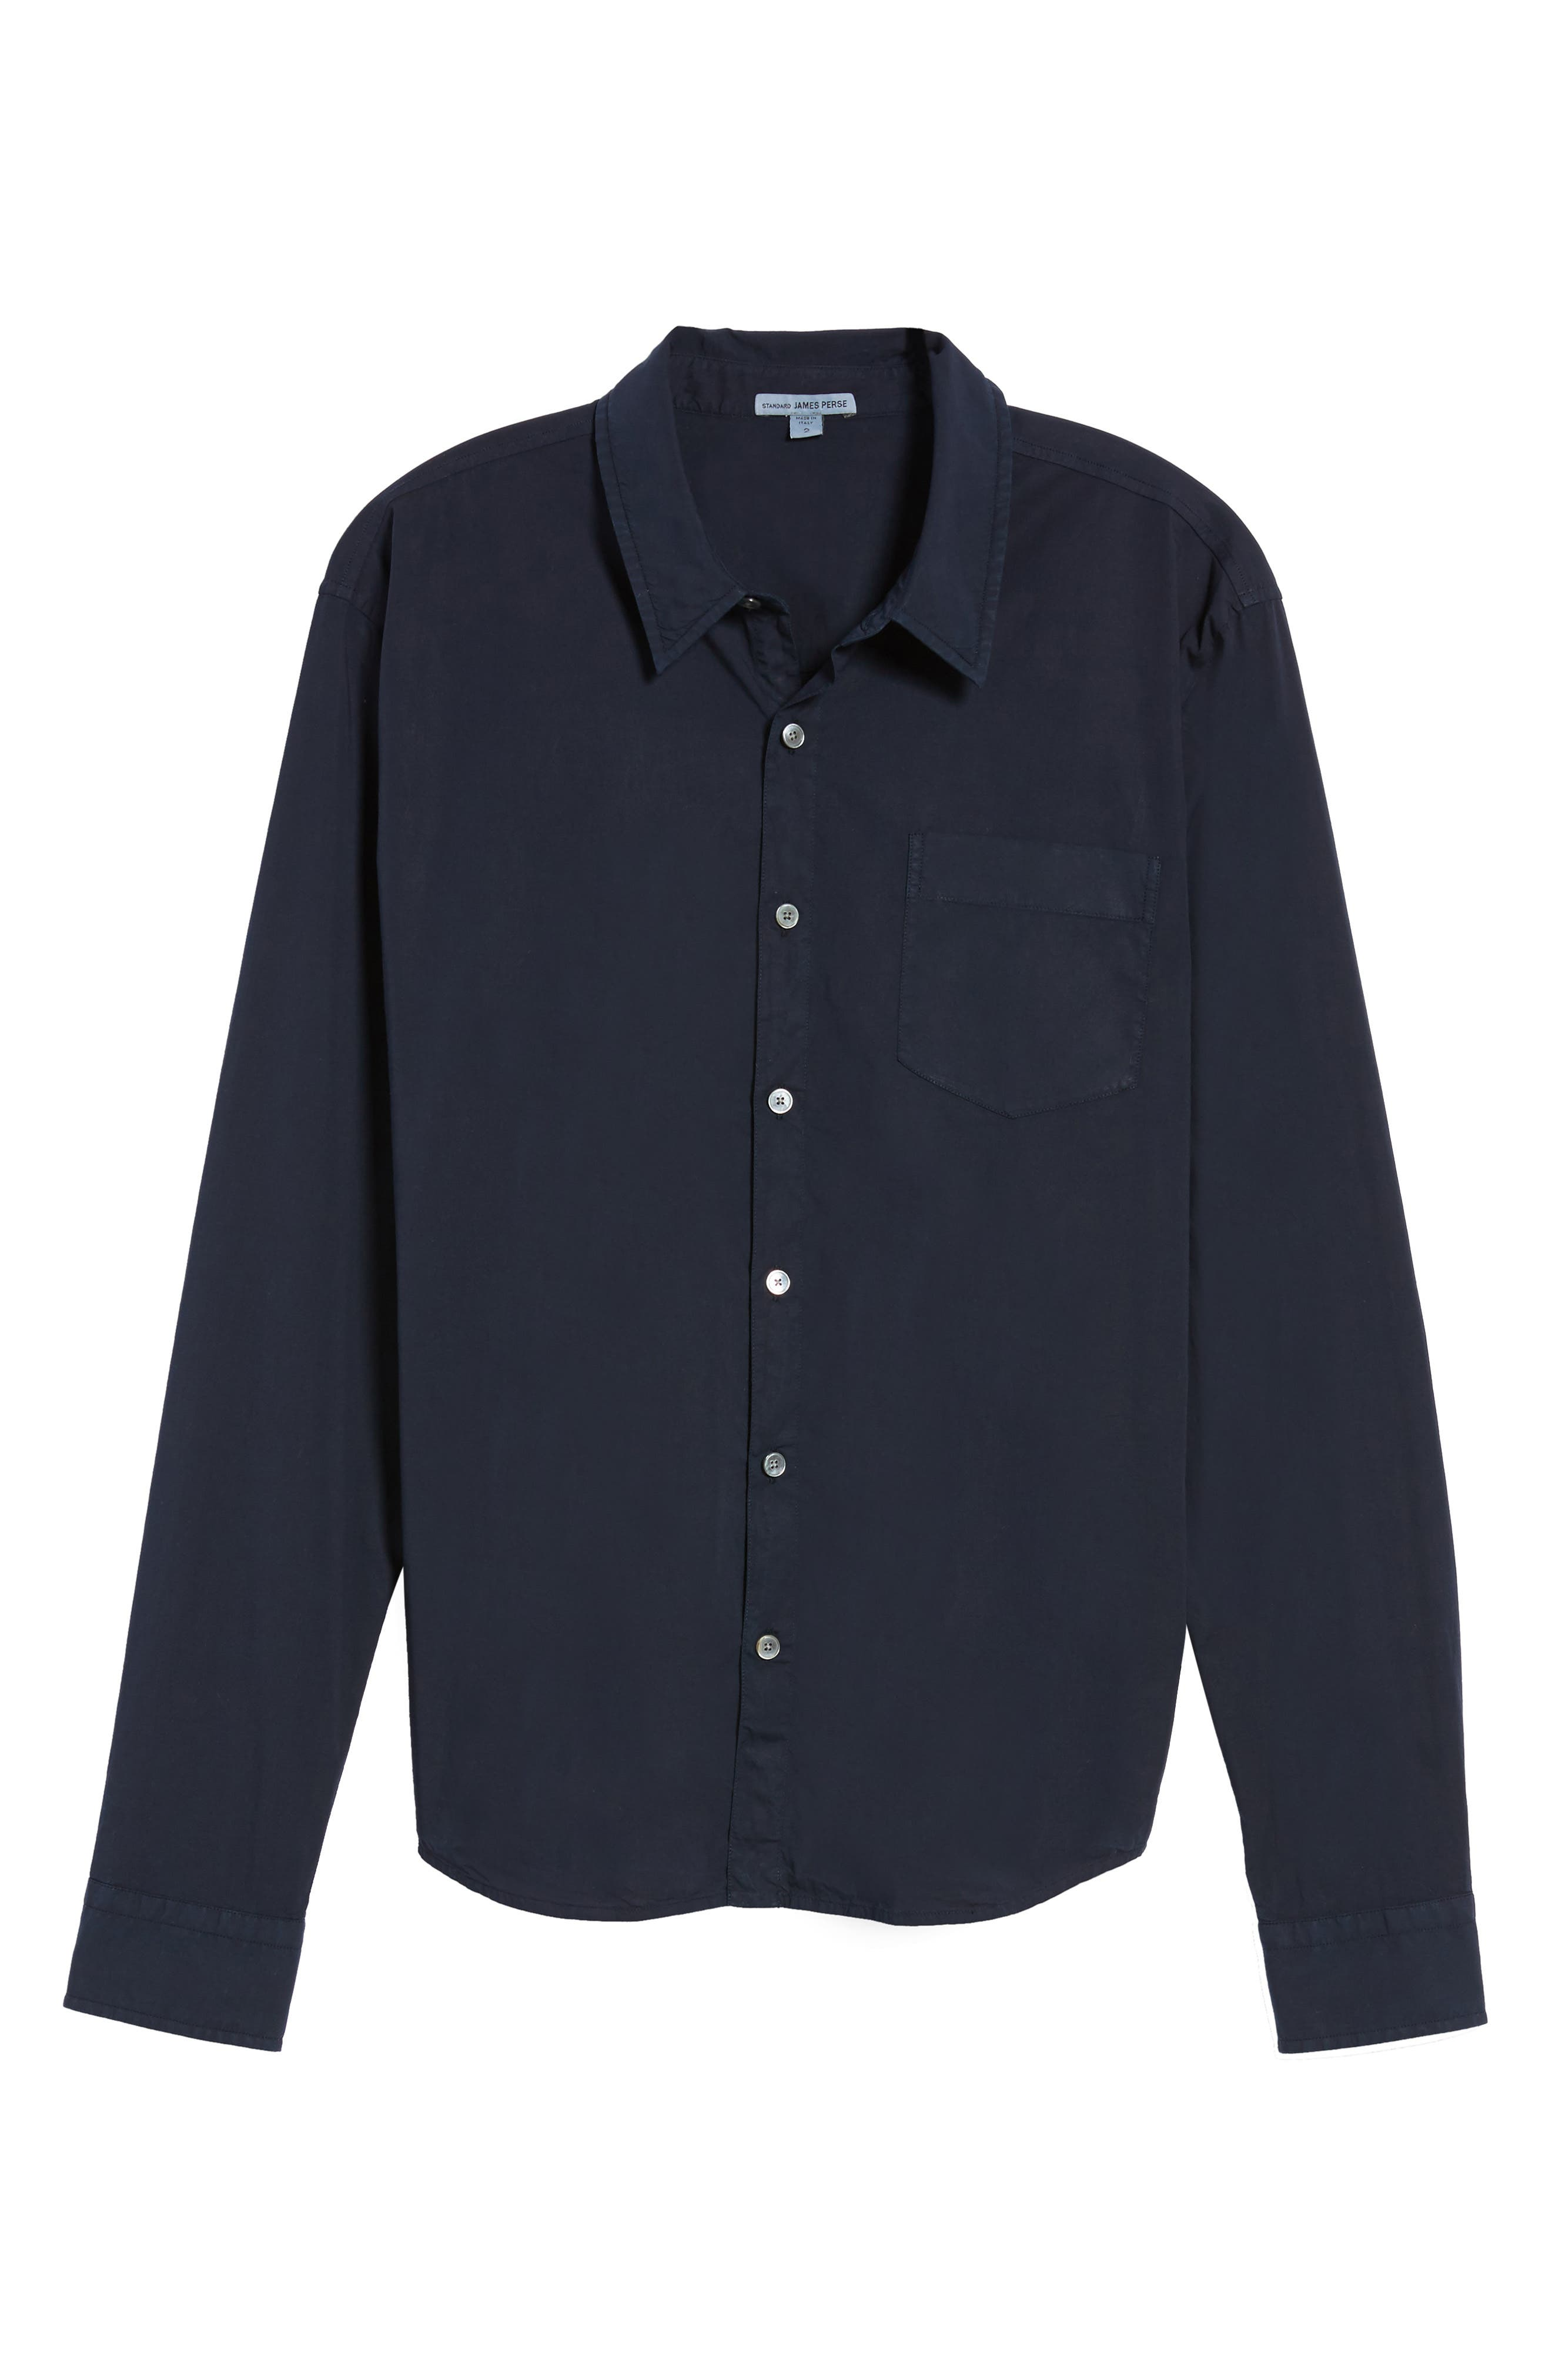 Relaxed Fit Sport Shirt,                             Alternate thumbnail 6, color,                             Blue Ink